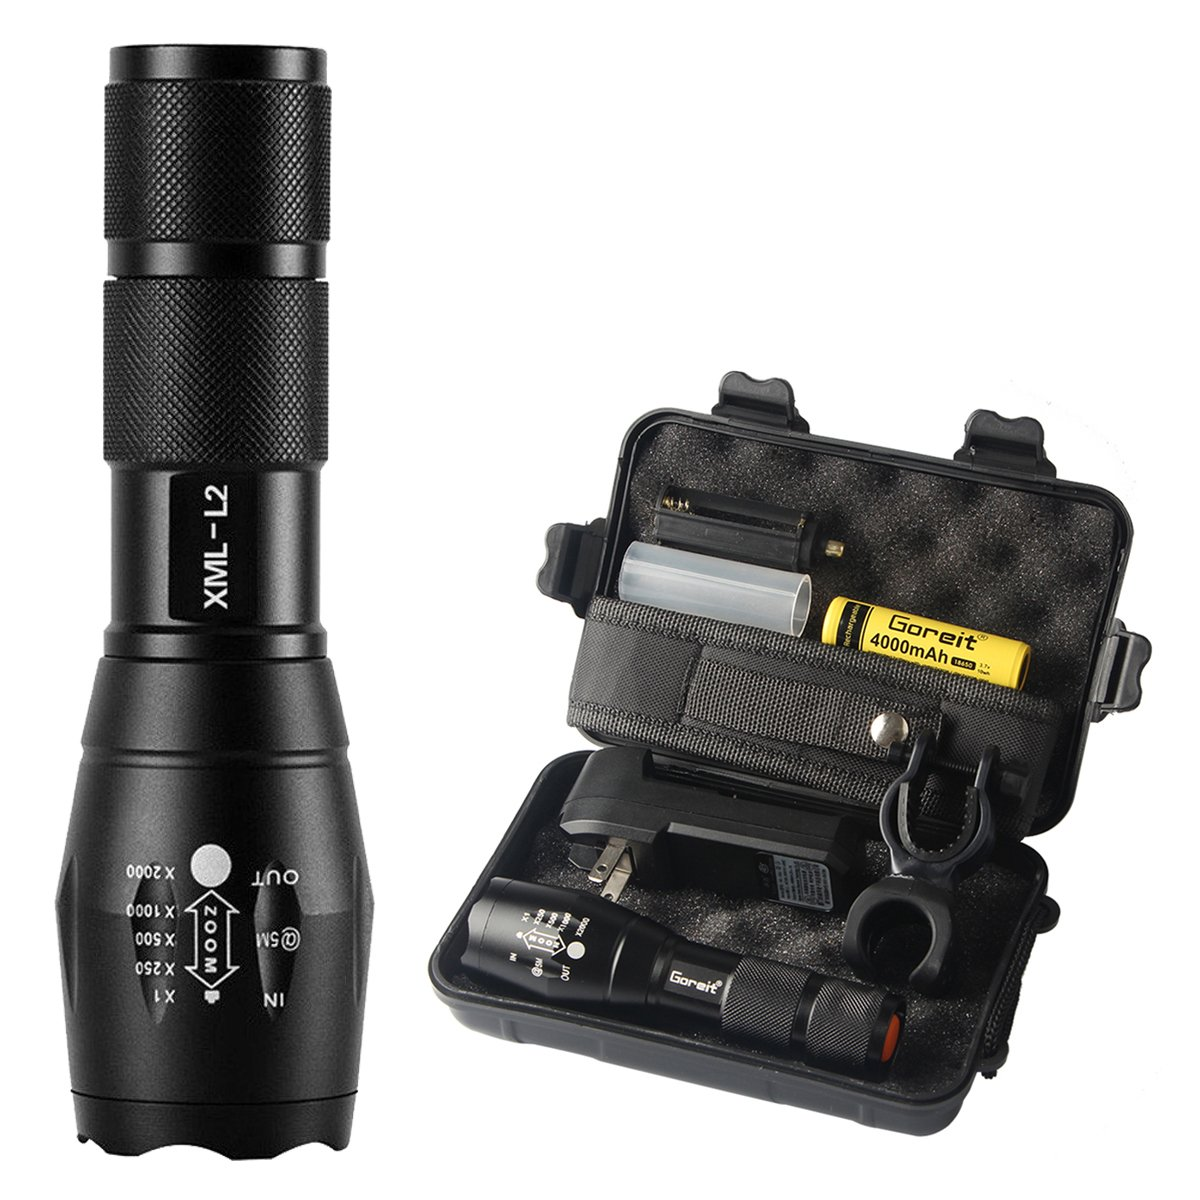 Goreit X800 Military Zoomable Ultra Bright 900 Lumens ,CREE XML T6 Rainproof Flashlight,Ajustable Focus 5 Modes,For Cycling Hiking Camping Emergency etc. (18650 AAA Battery and Charger not Included)